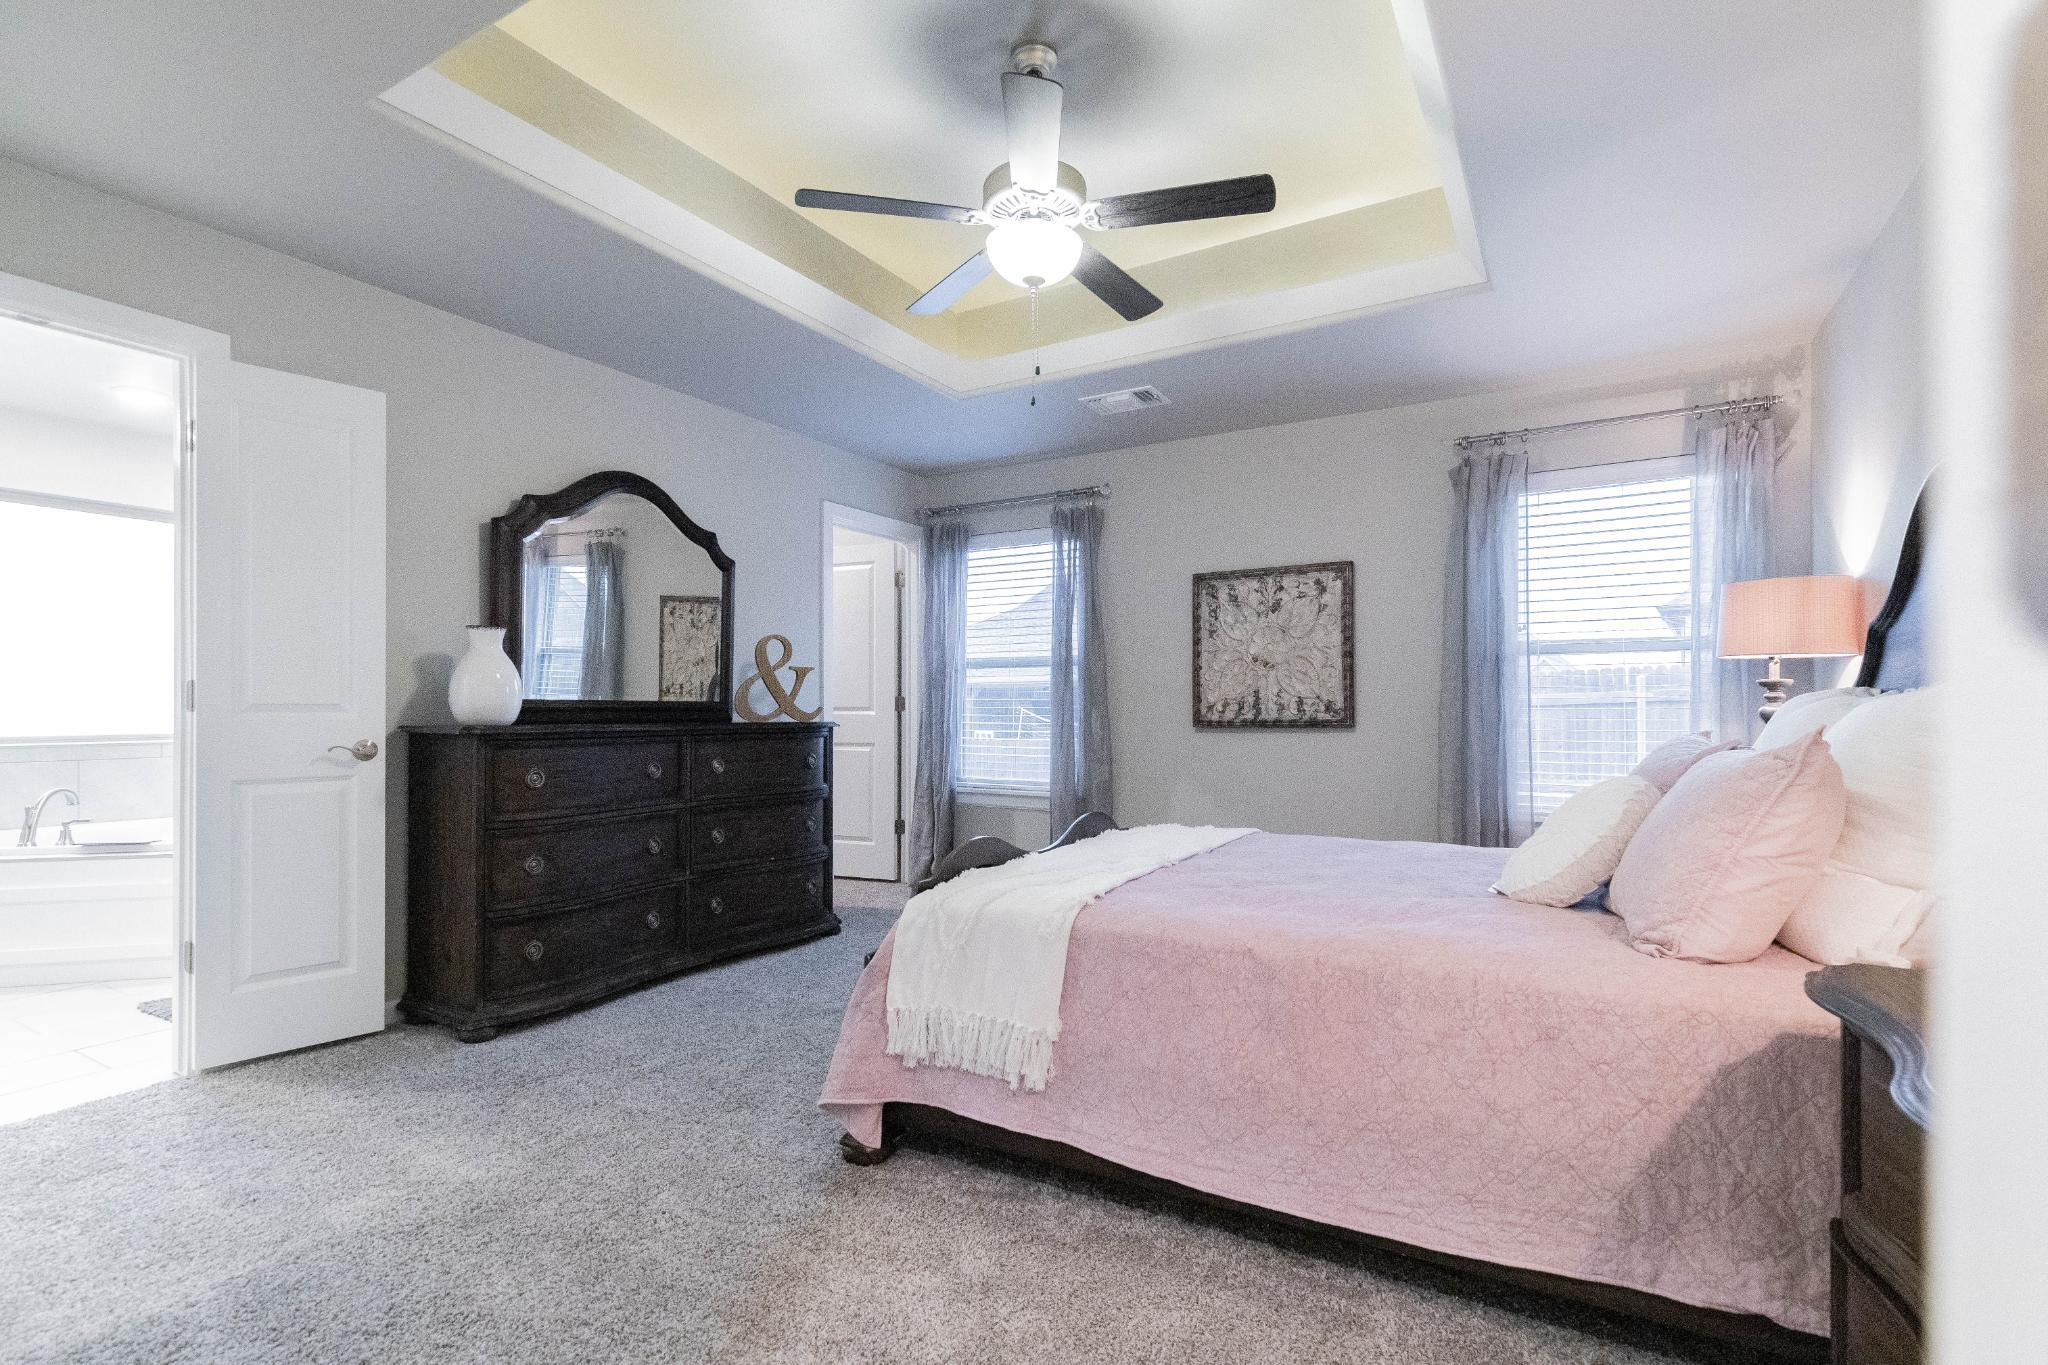 Bedroom featured in the Shiloh Bonus Room 2 By Homes By Taber in Oklahoma City, OK